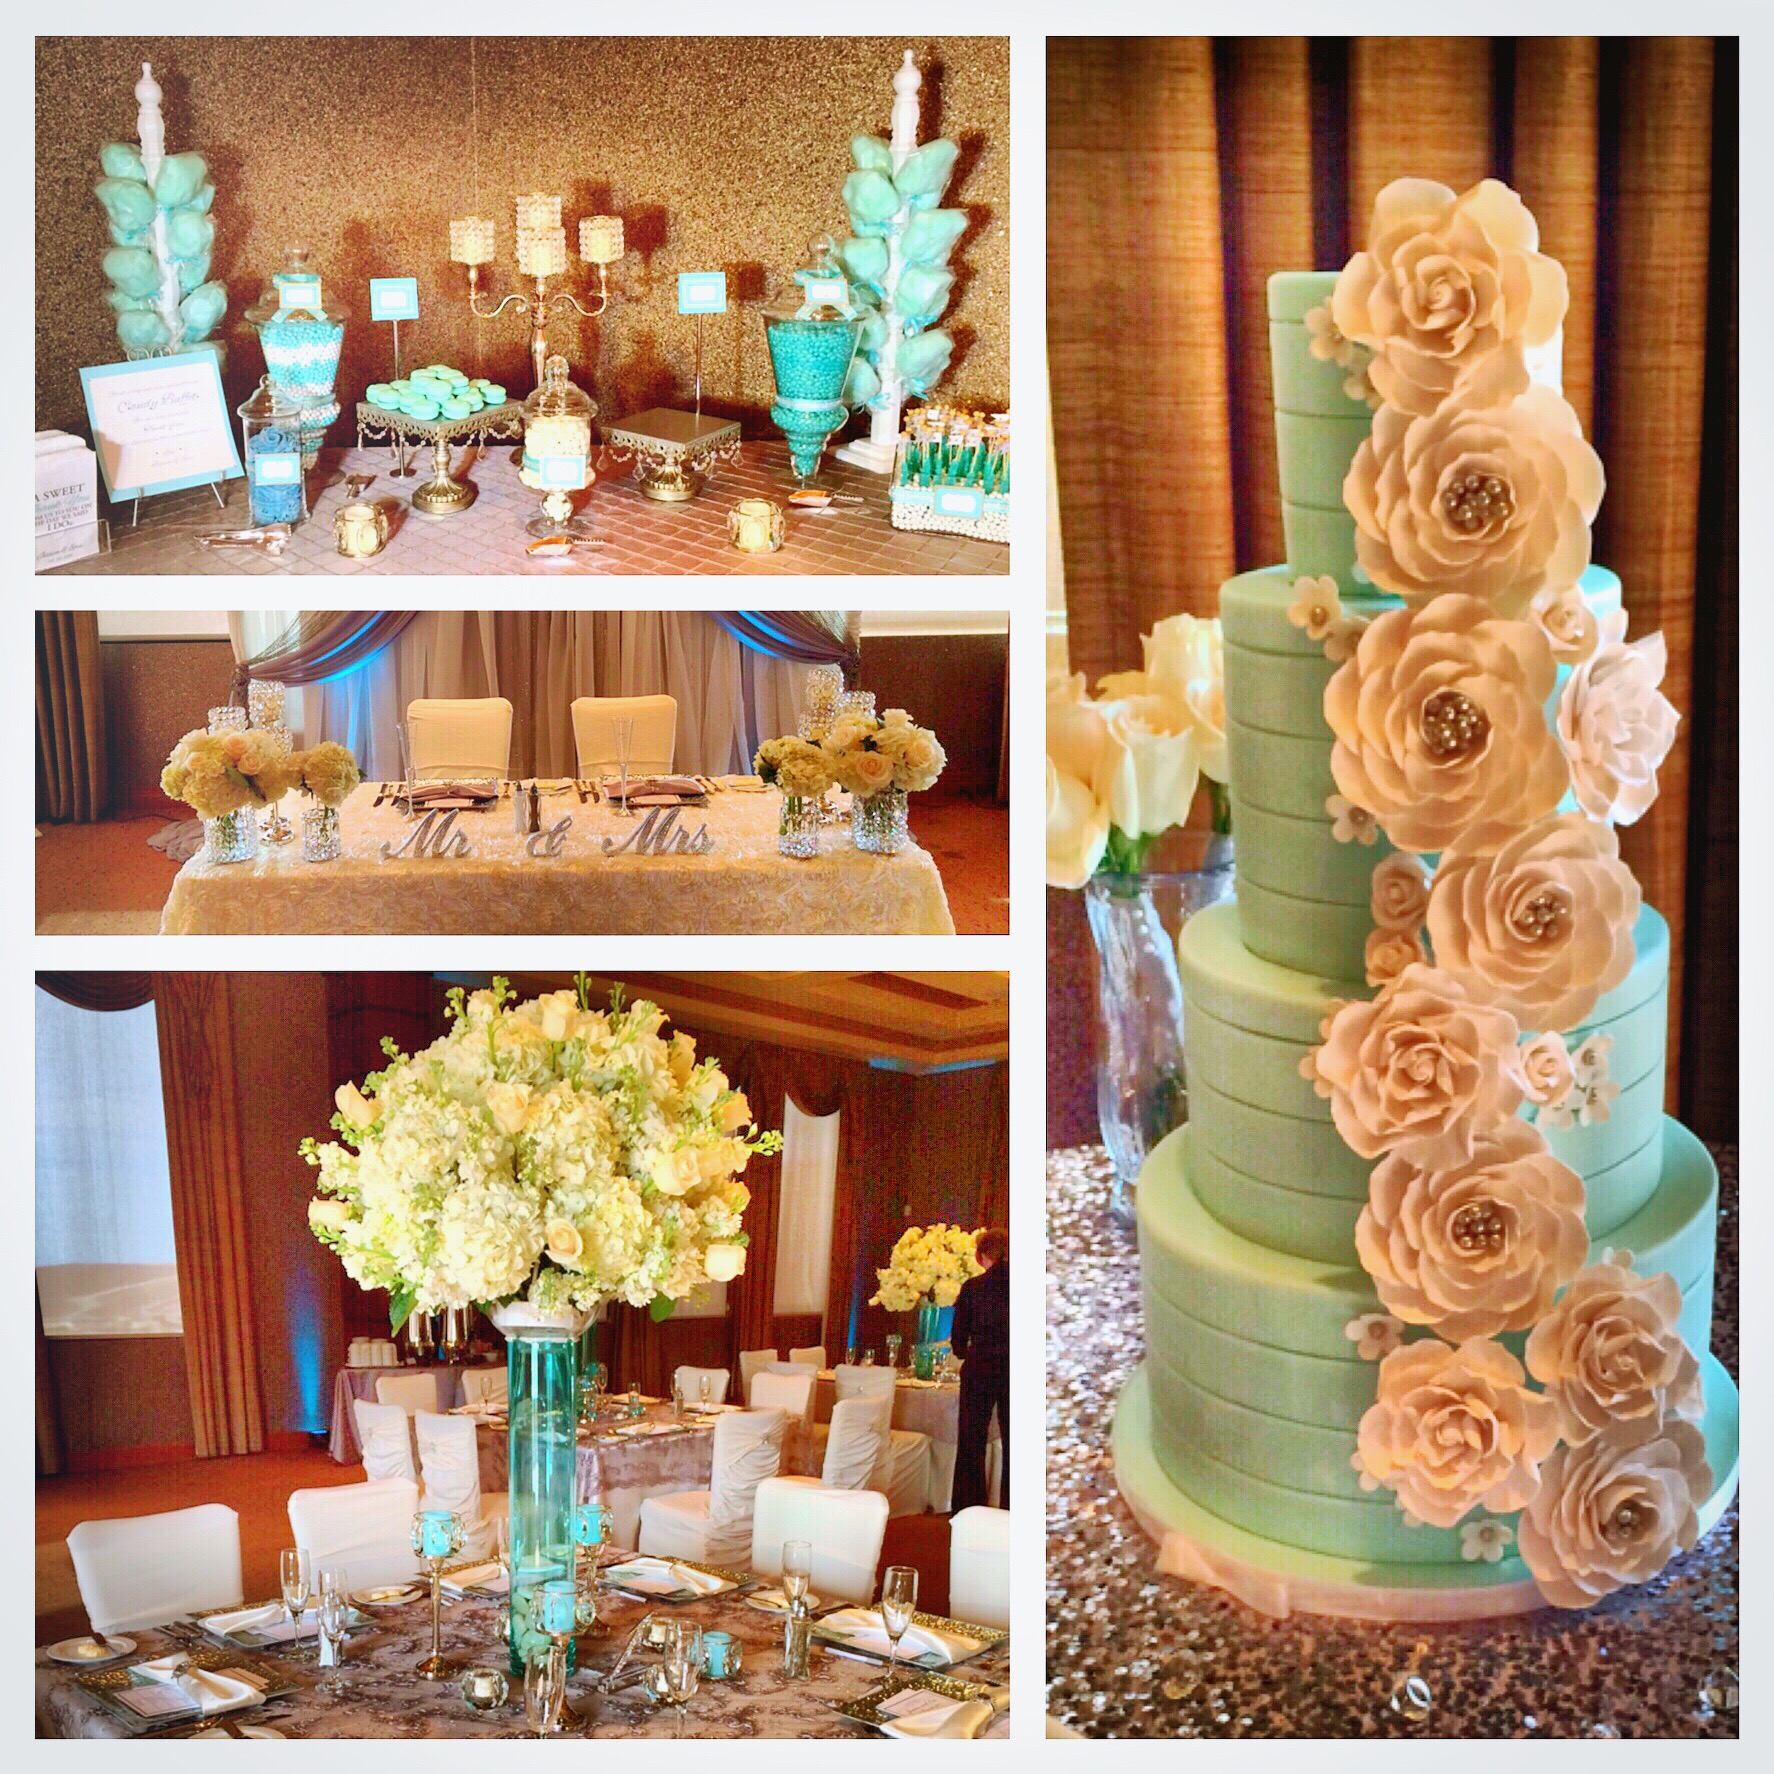 A Weekend Of Weddings At Emerald Queensridge Green Valley Ranch Resort And Paiute Golf Club